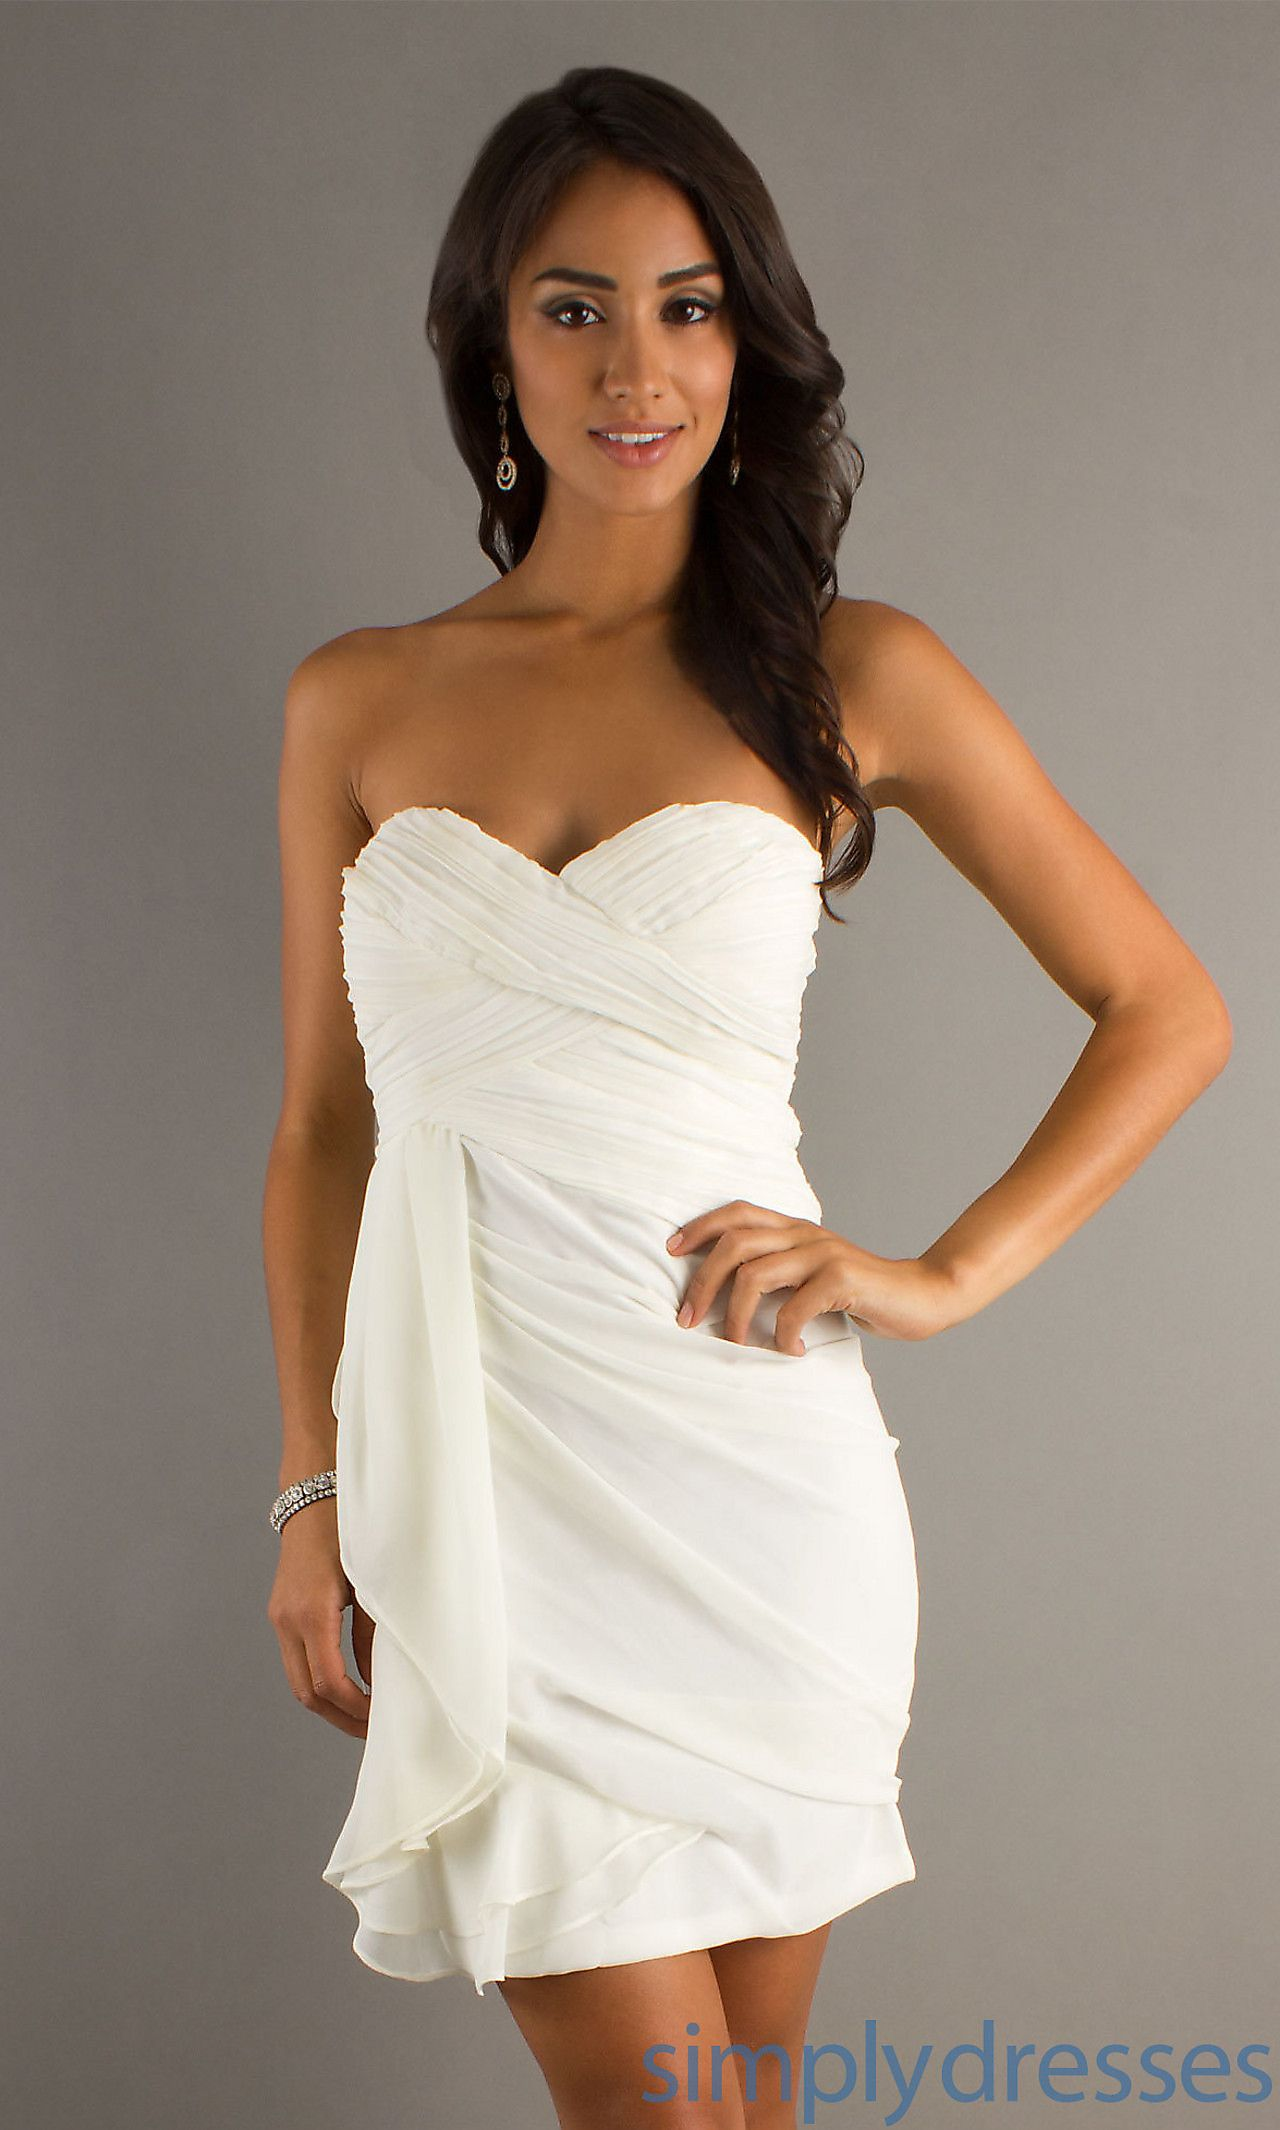 Alfred angelo dream maker wedding dress  Short White Strapless Sweetheart  cute rehearsal dinner dress